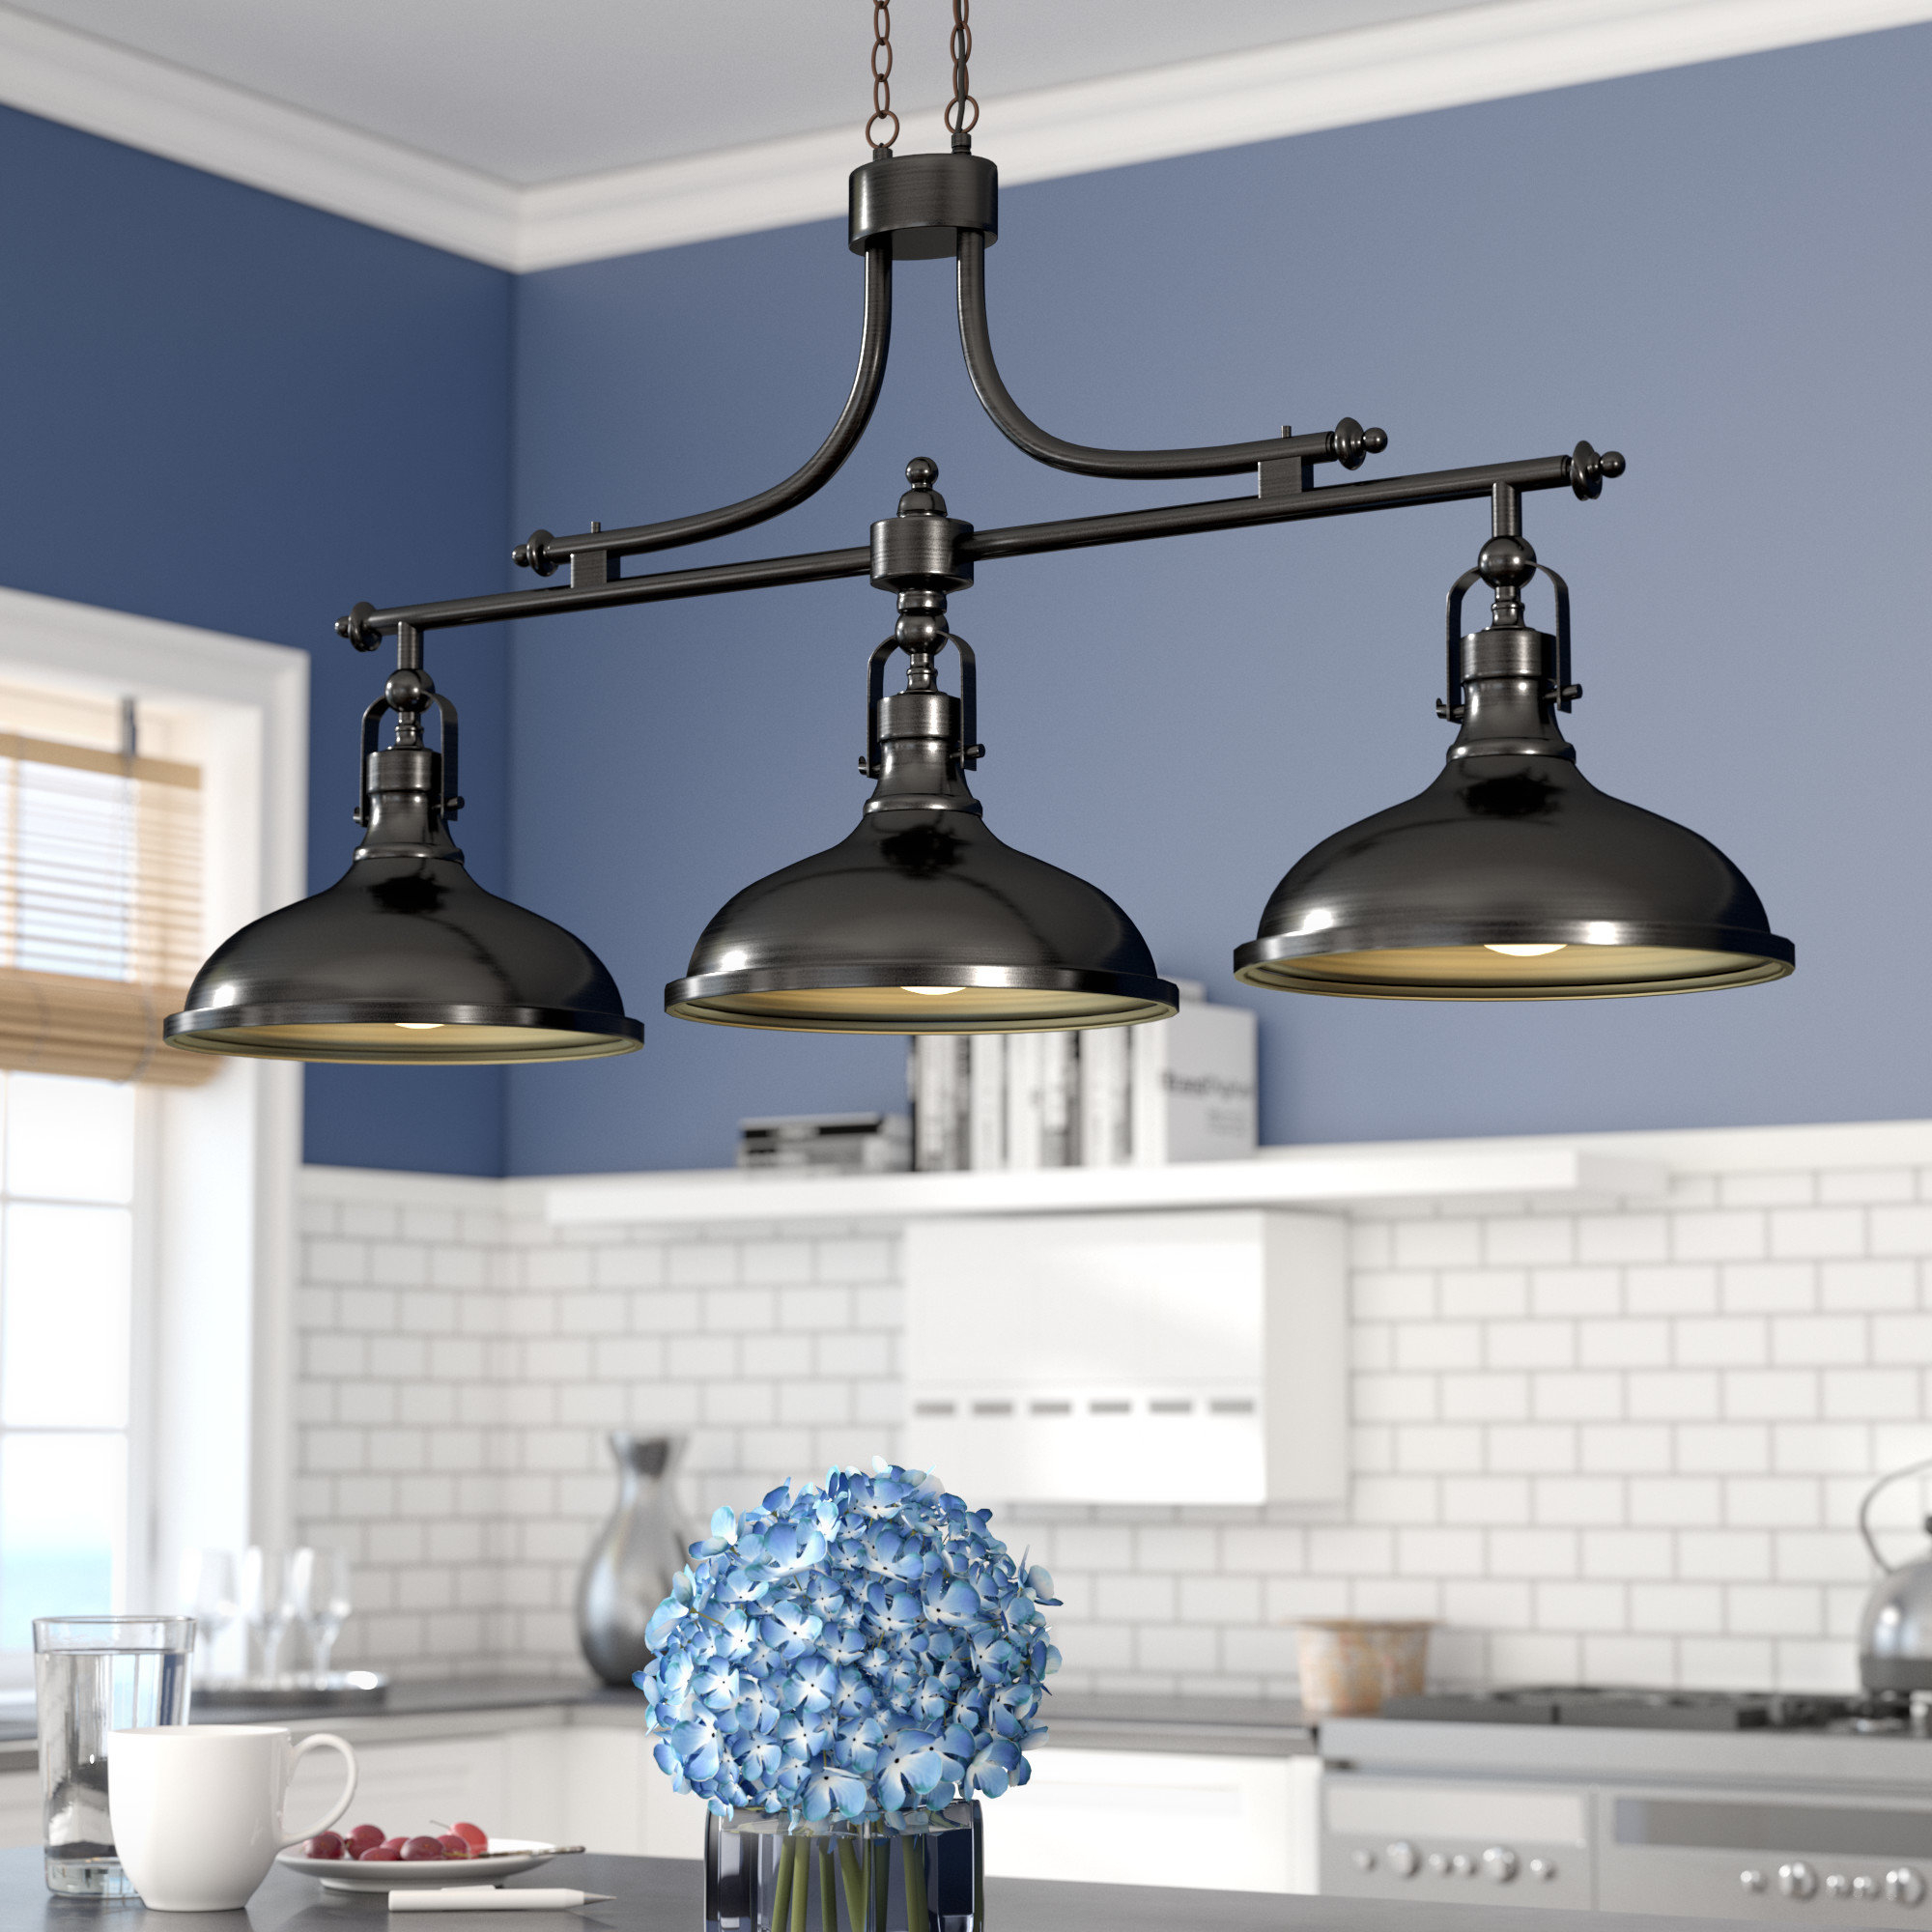 Kitchen Island Pendant Lighting Fixtures - Gnubies pertaining to Ariel 2-Light Kitchen Island Dome Pendants (Image 20 of 30)